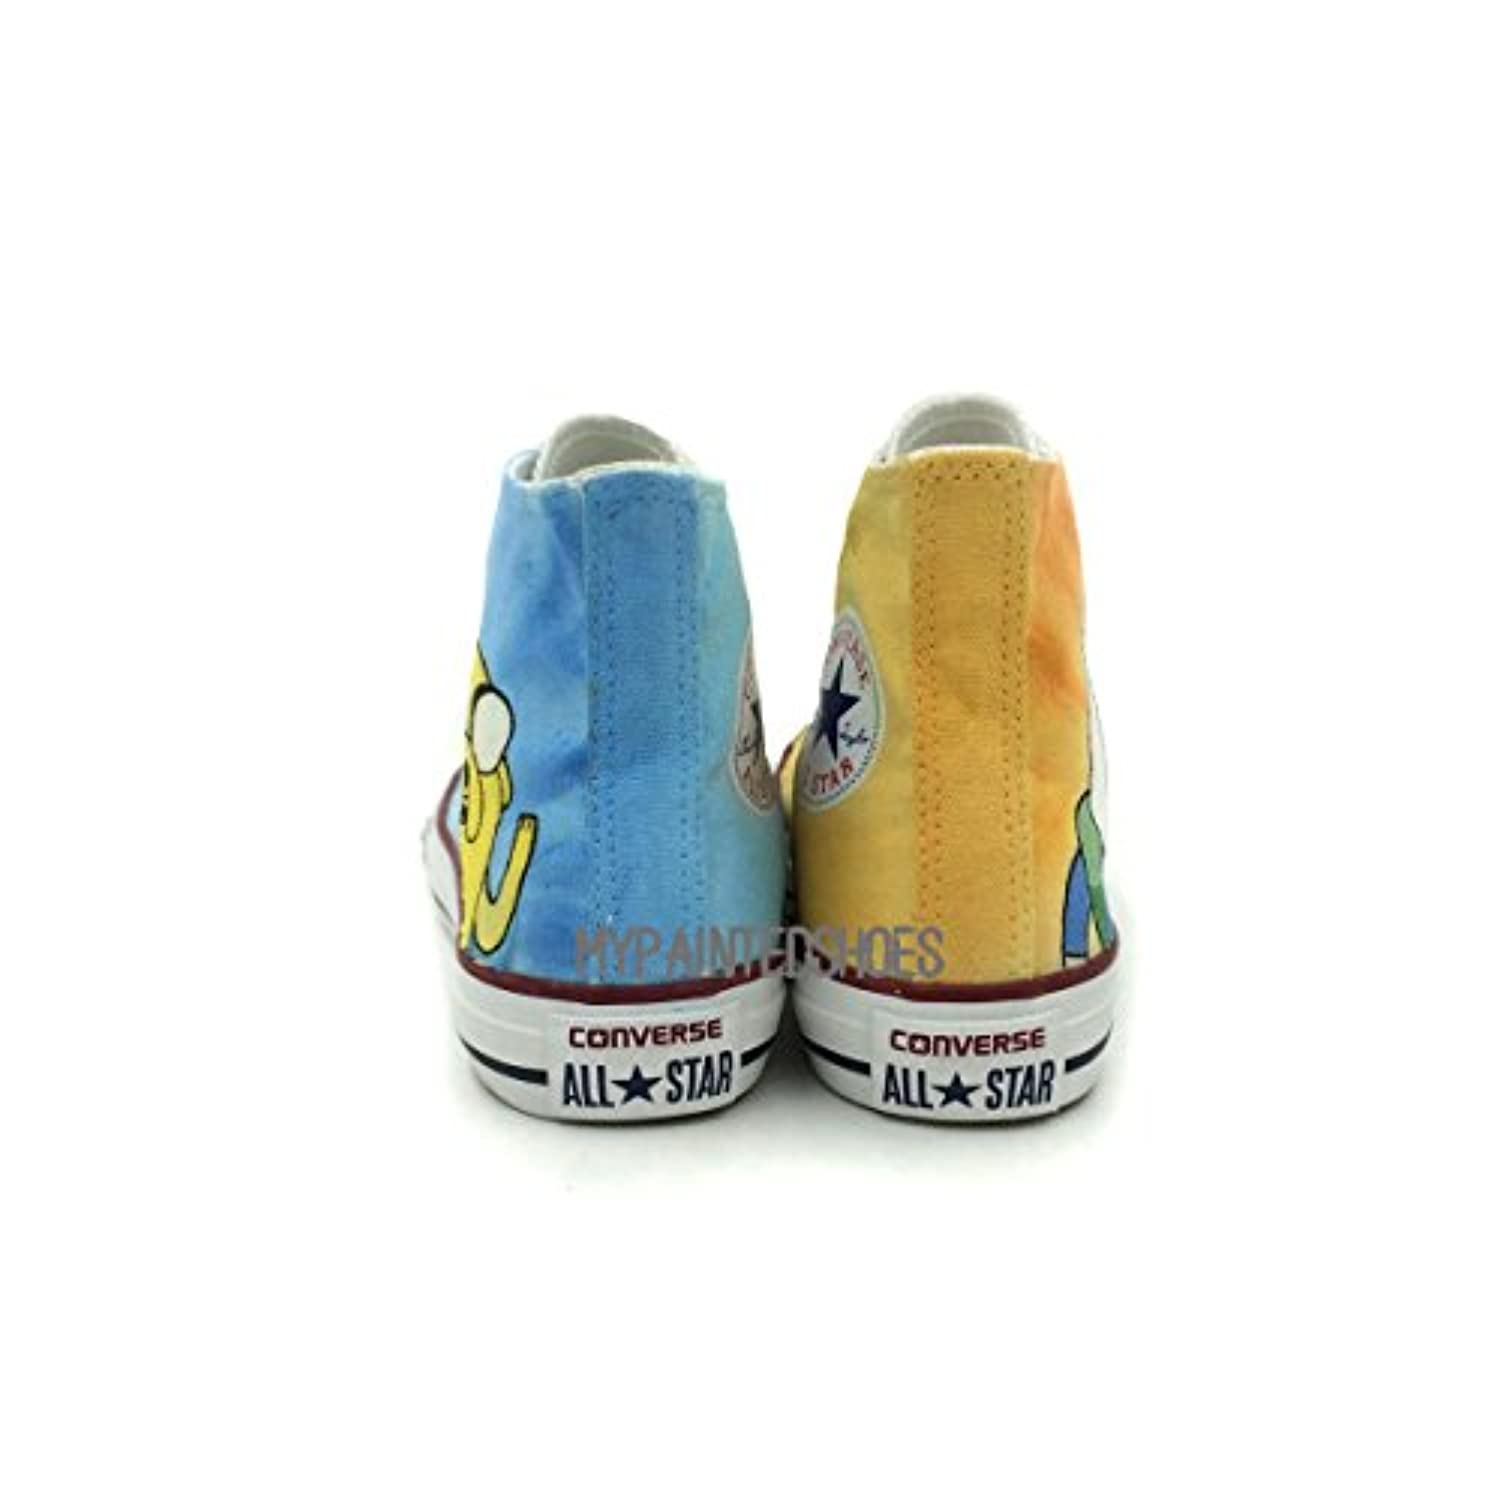 004a542b8320 ... Converse All Star Adventure Time Hand Painted Kids Adult Cartoon Hand  Painted Canvas Shoes ...